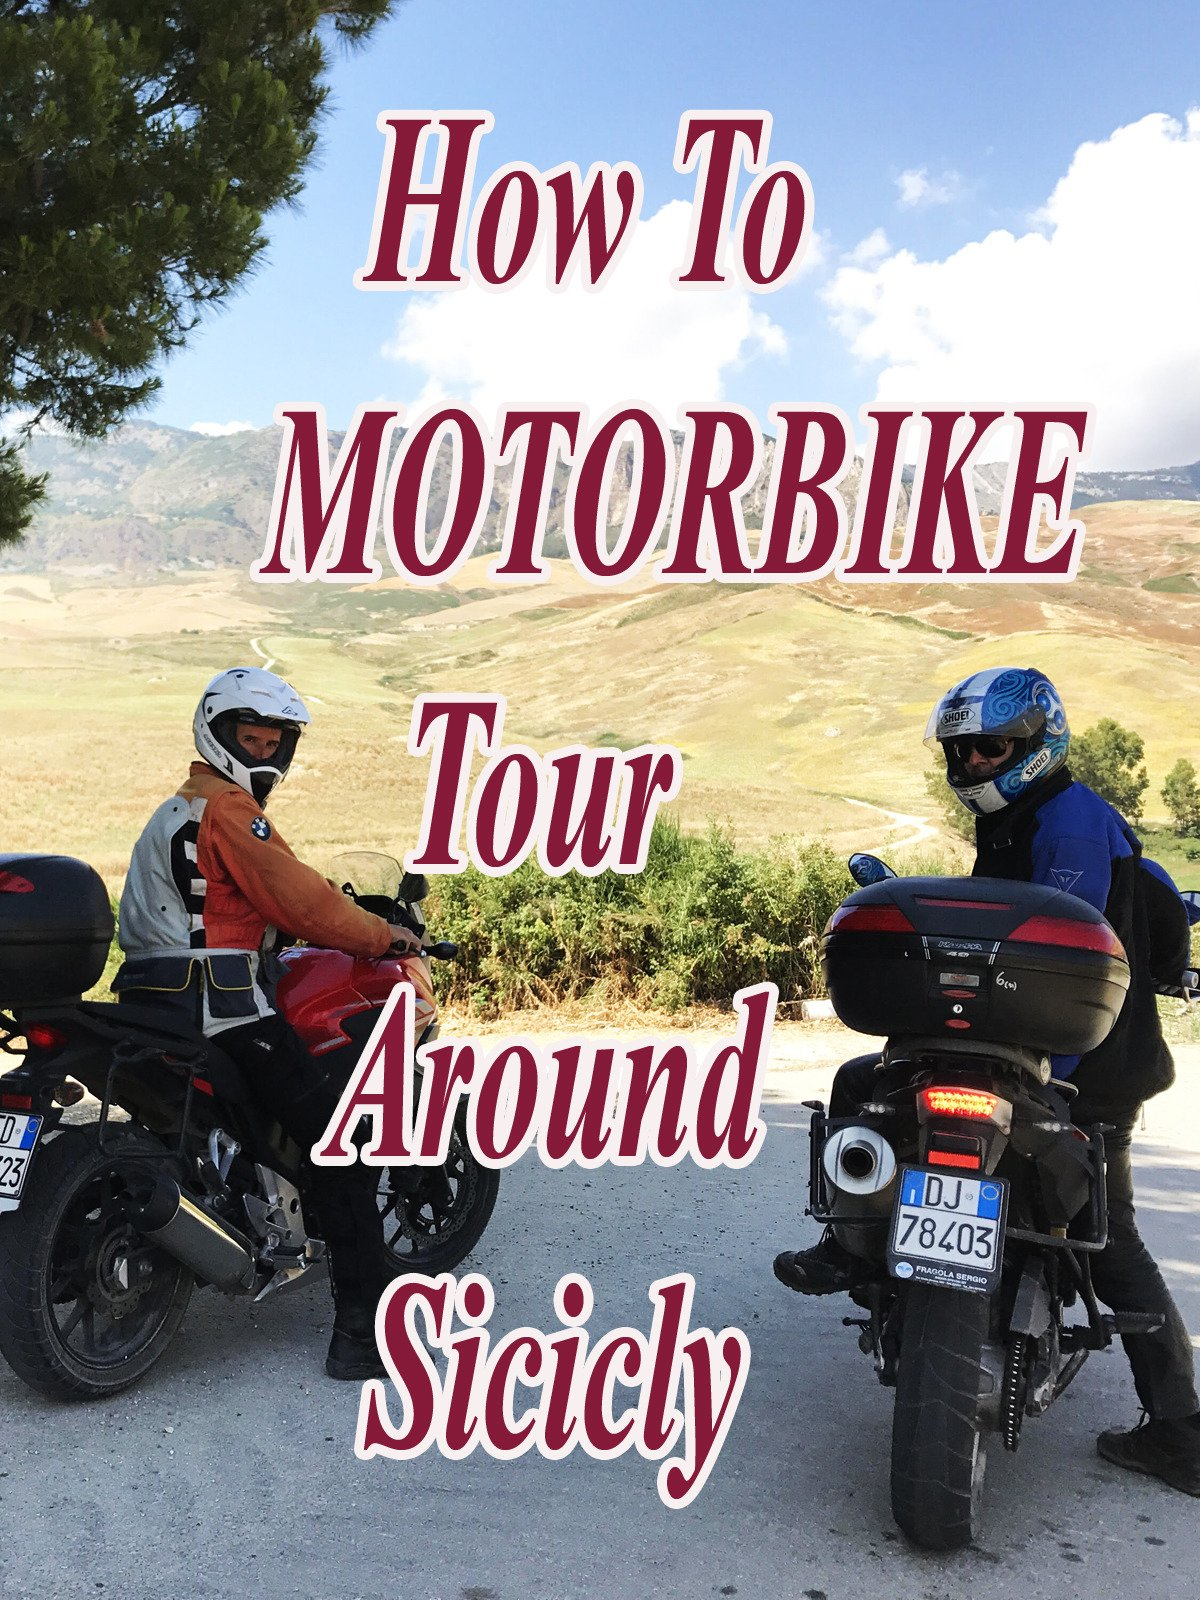 How To Motorbike Tour Around Sicily